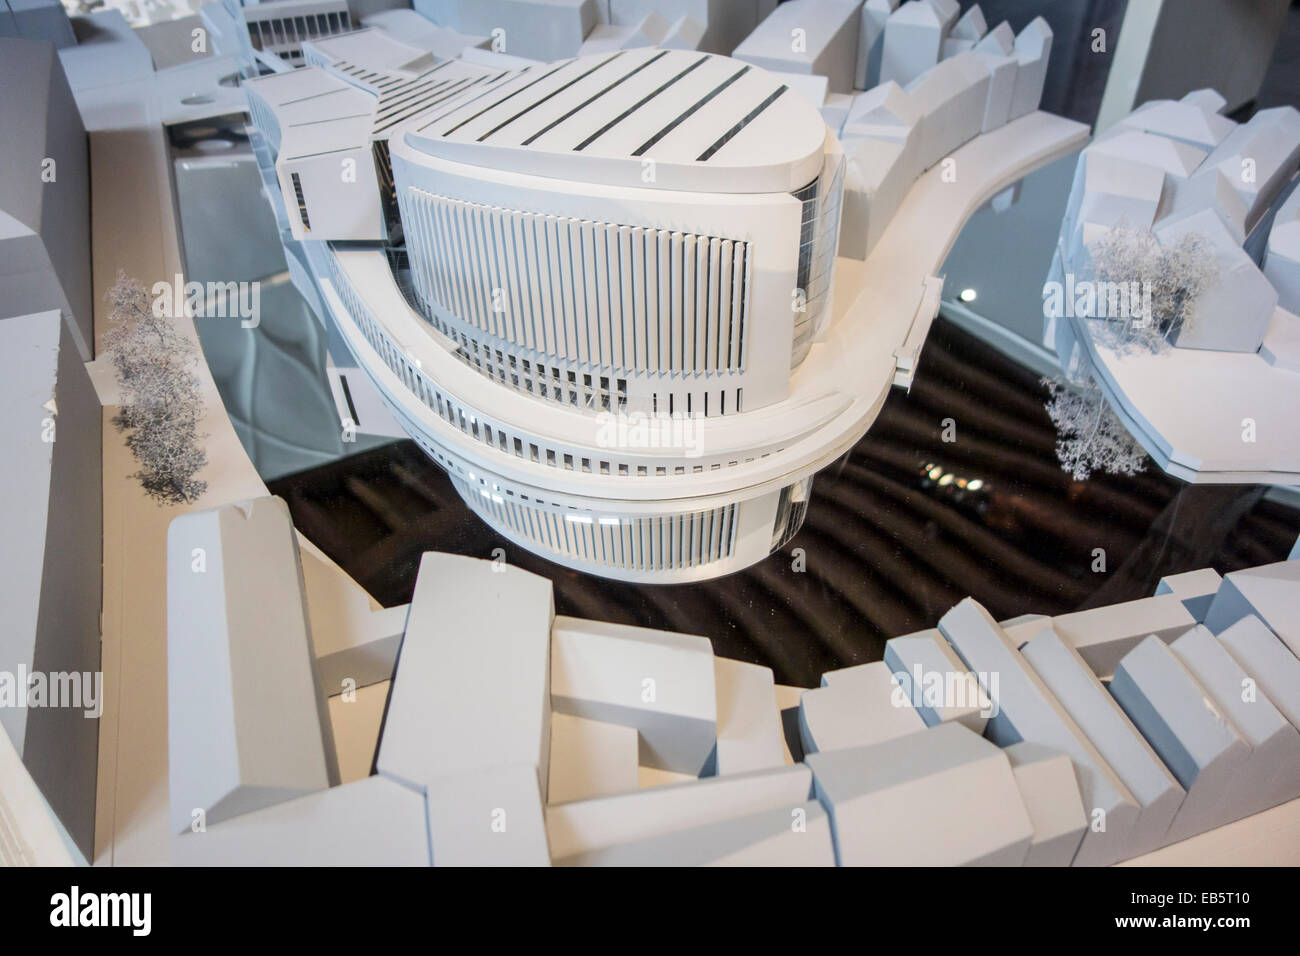 White scale model of modern building in city - Stock Image